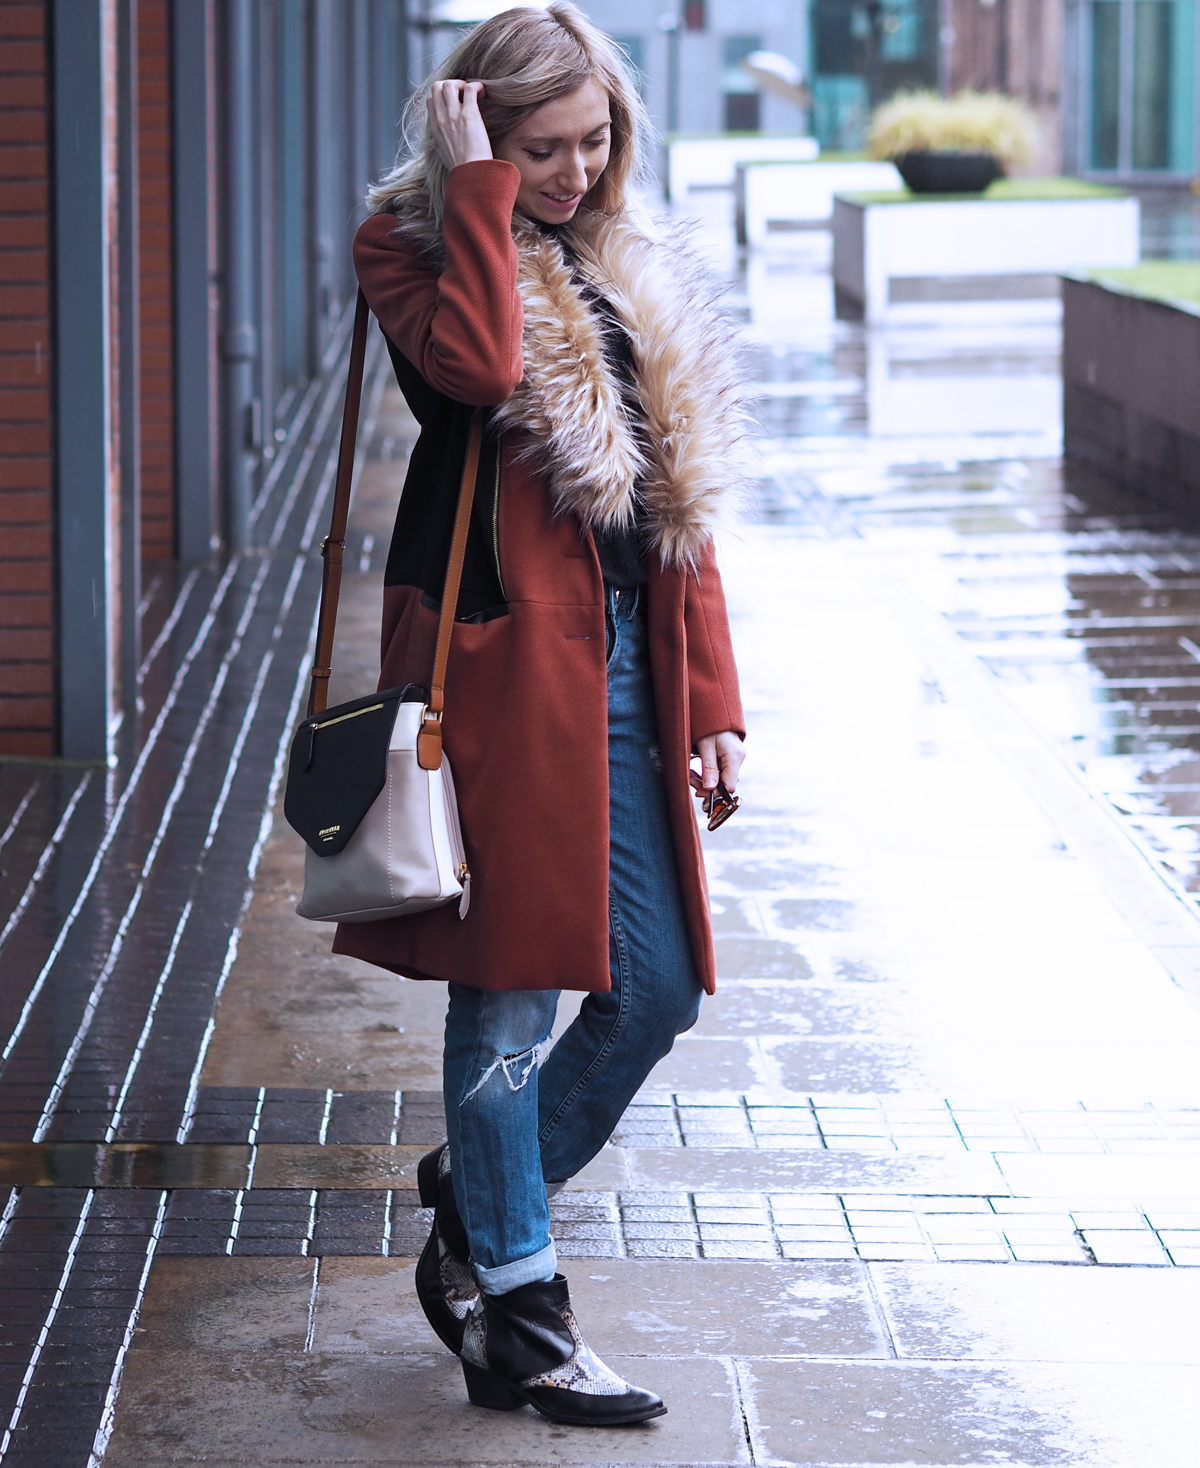 River Island Fur Jacket - Rock On Holly blog